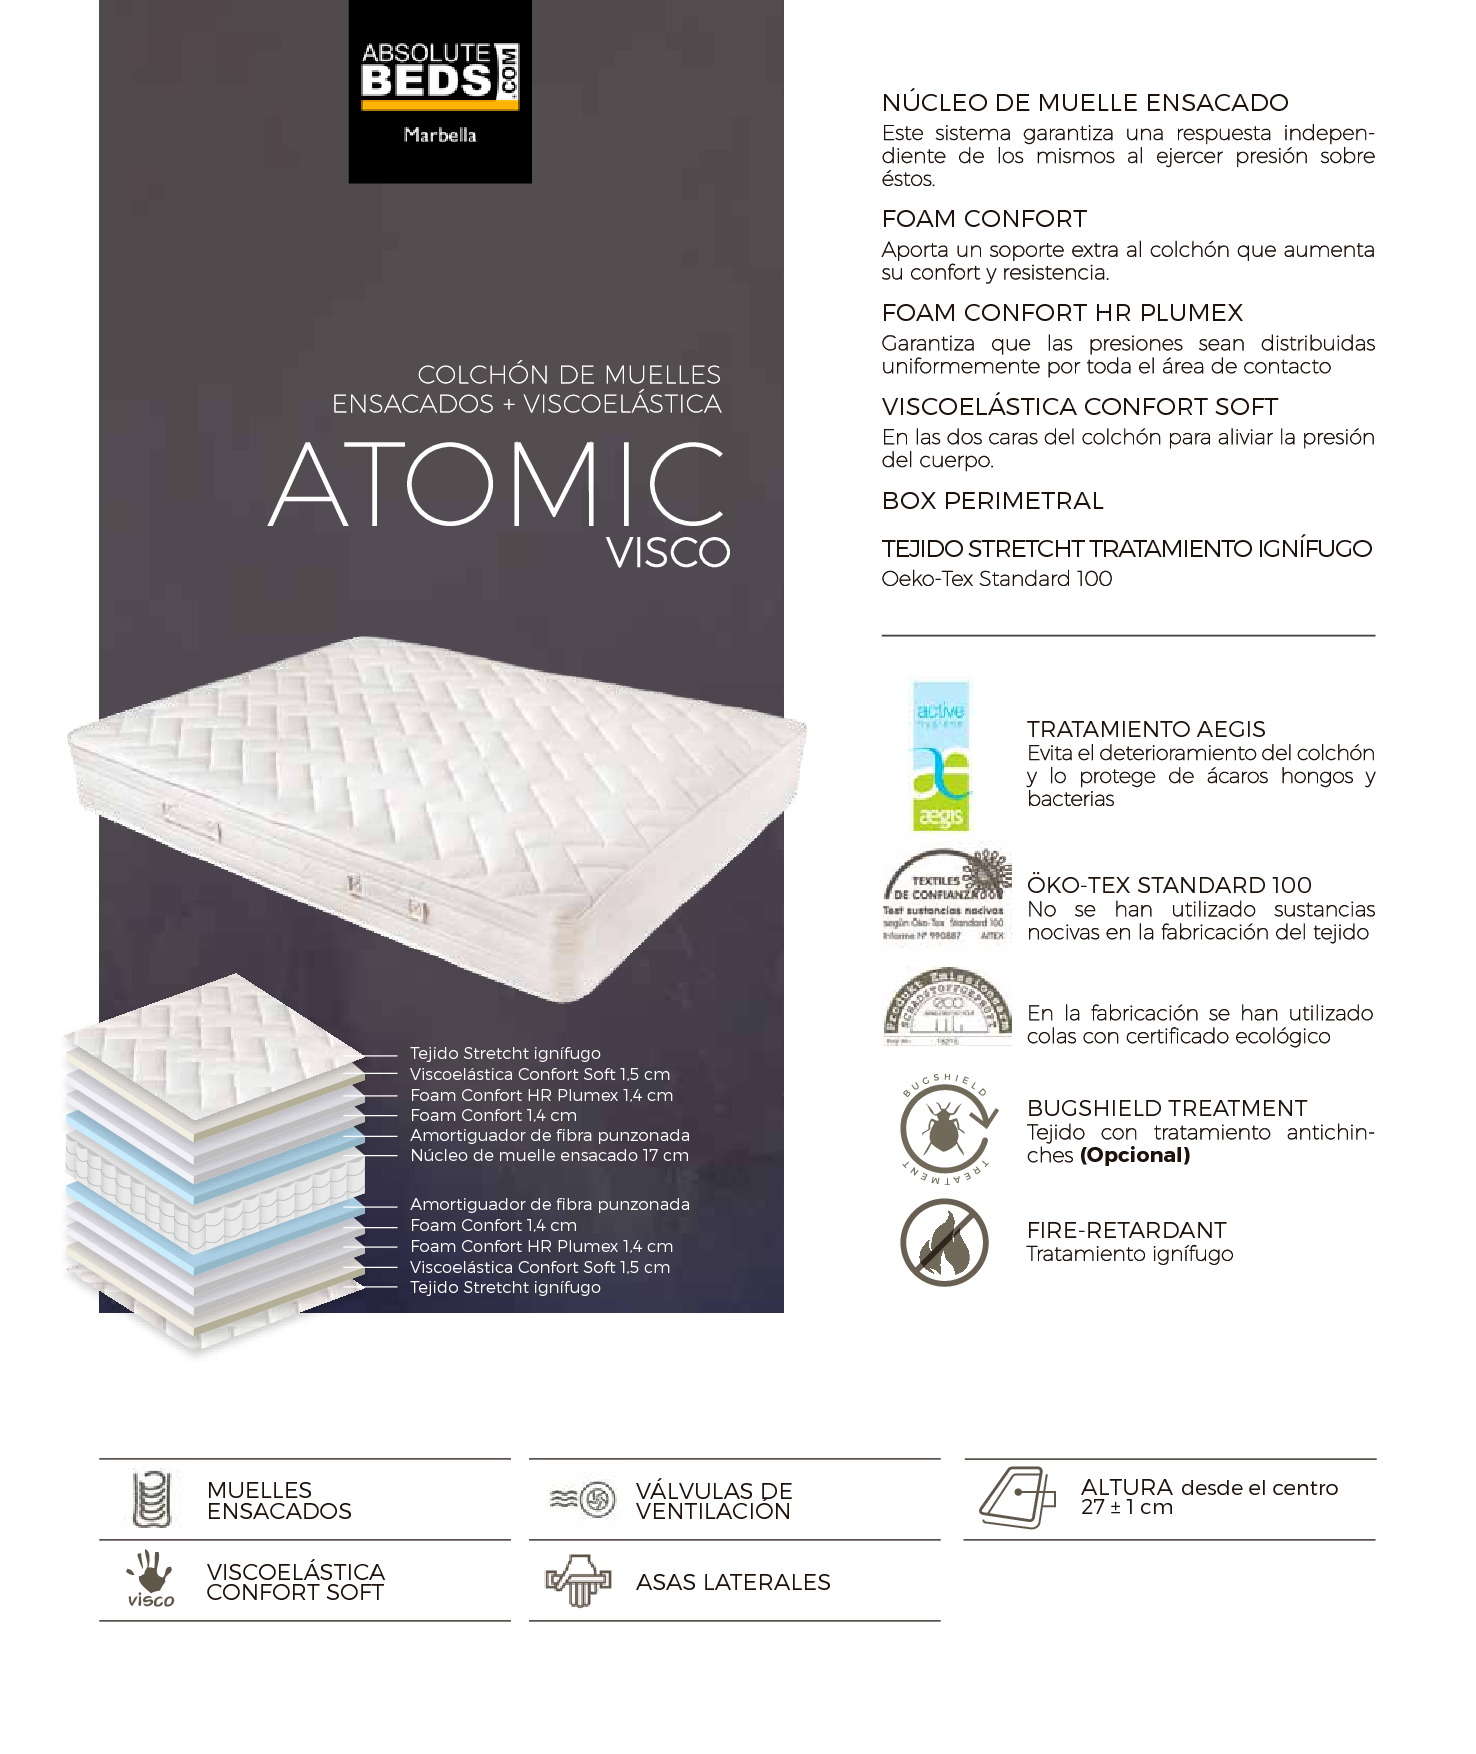 Ficha Atomic Visco Absolute Beds